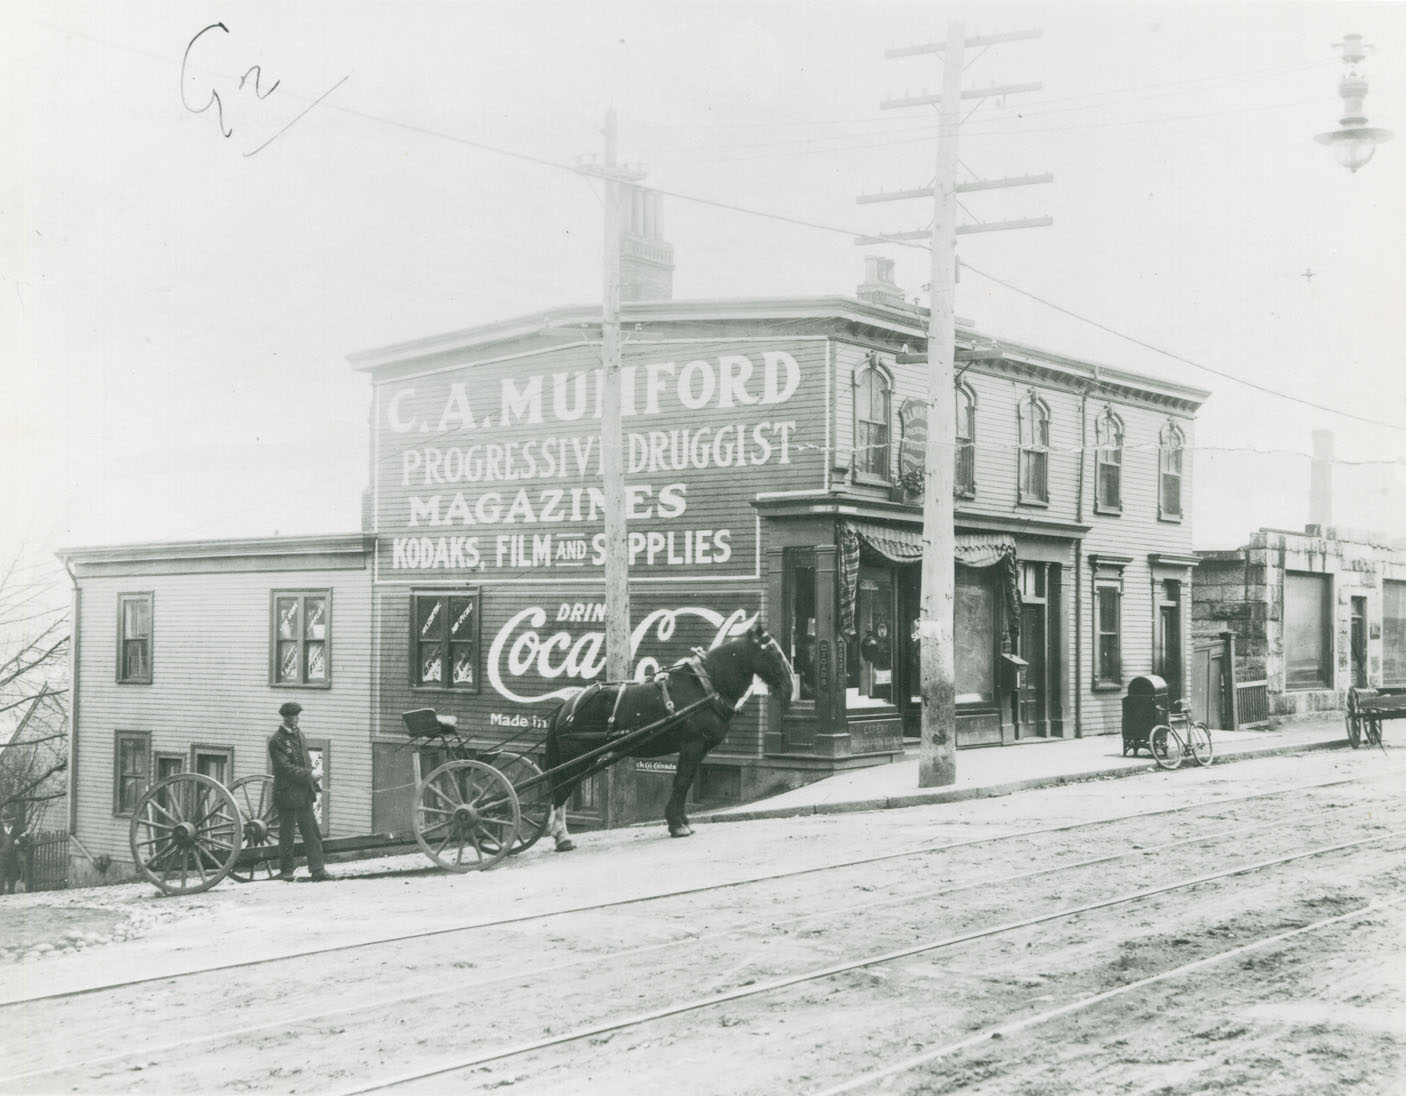 Southeast corner of Campbell Road (later Barrington Street) and East Young Street, Halifax, prior to 1917 explosion